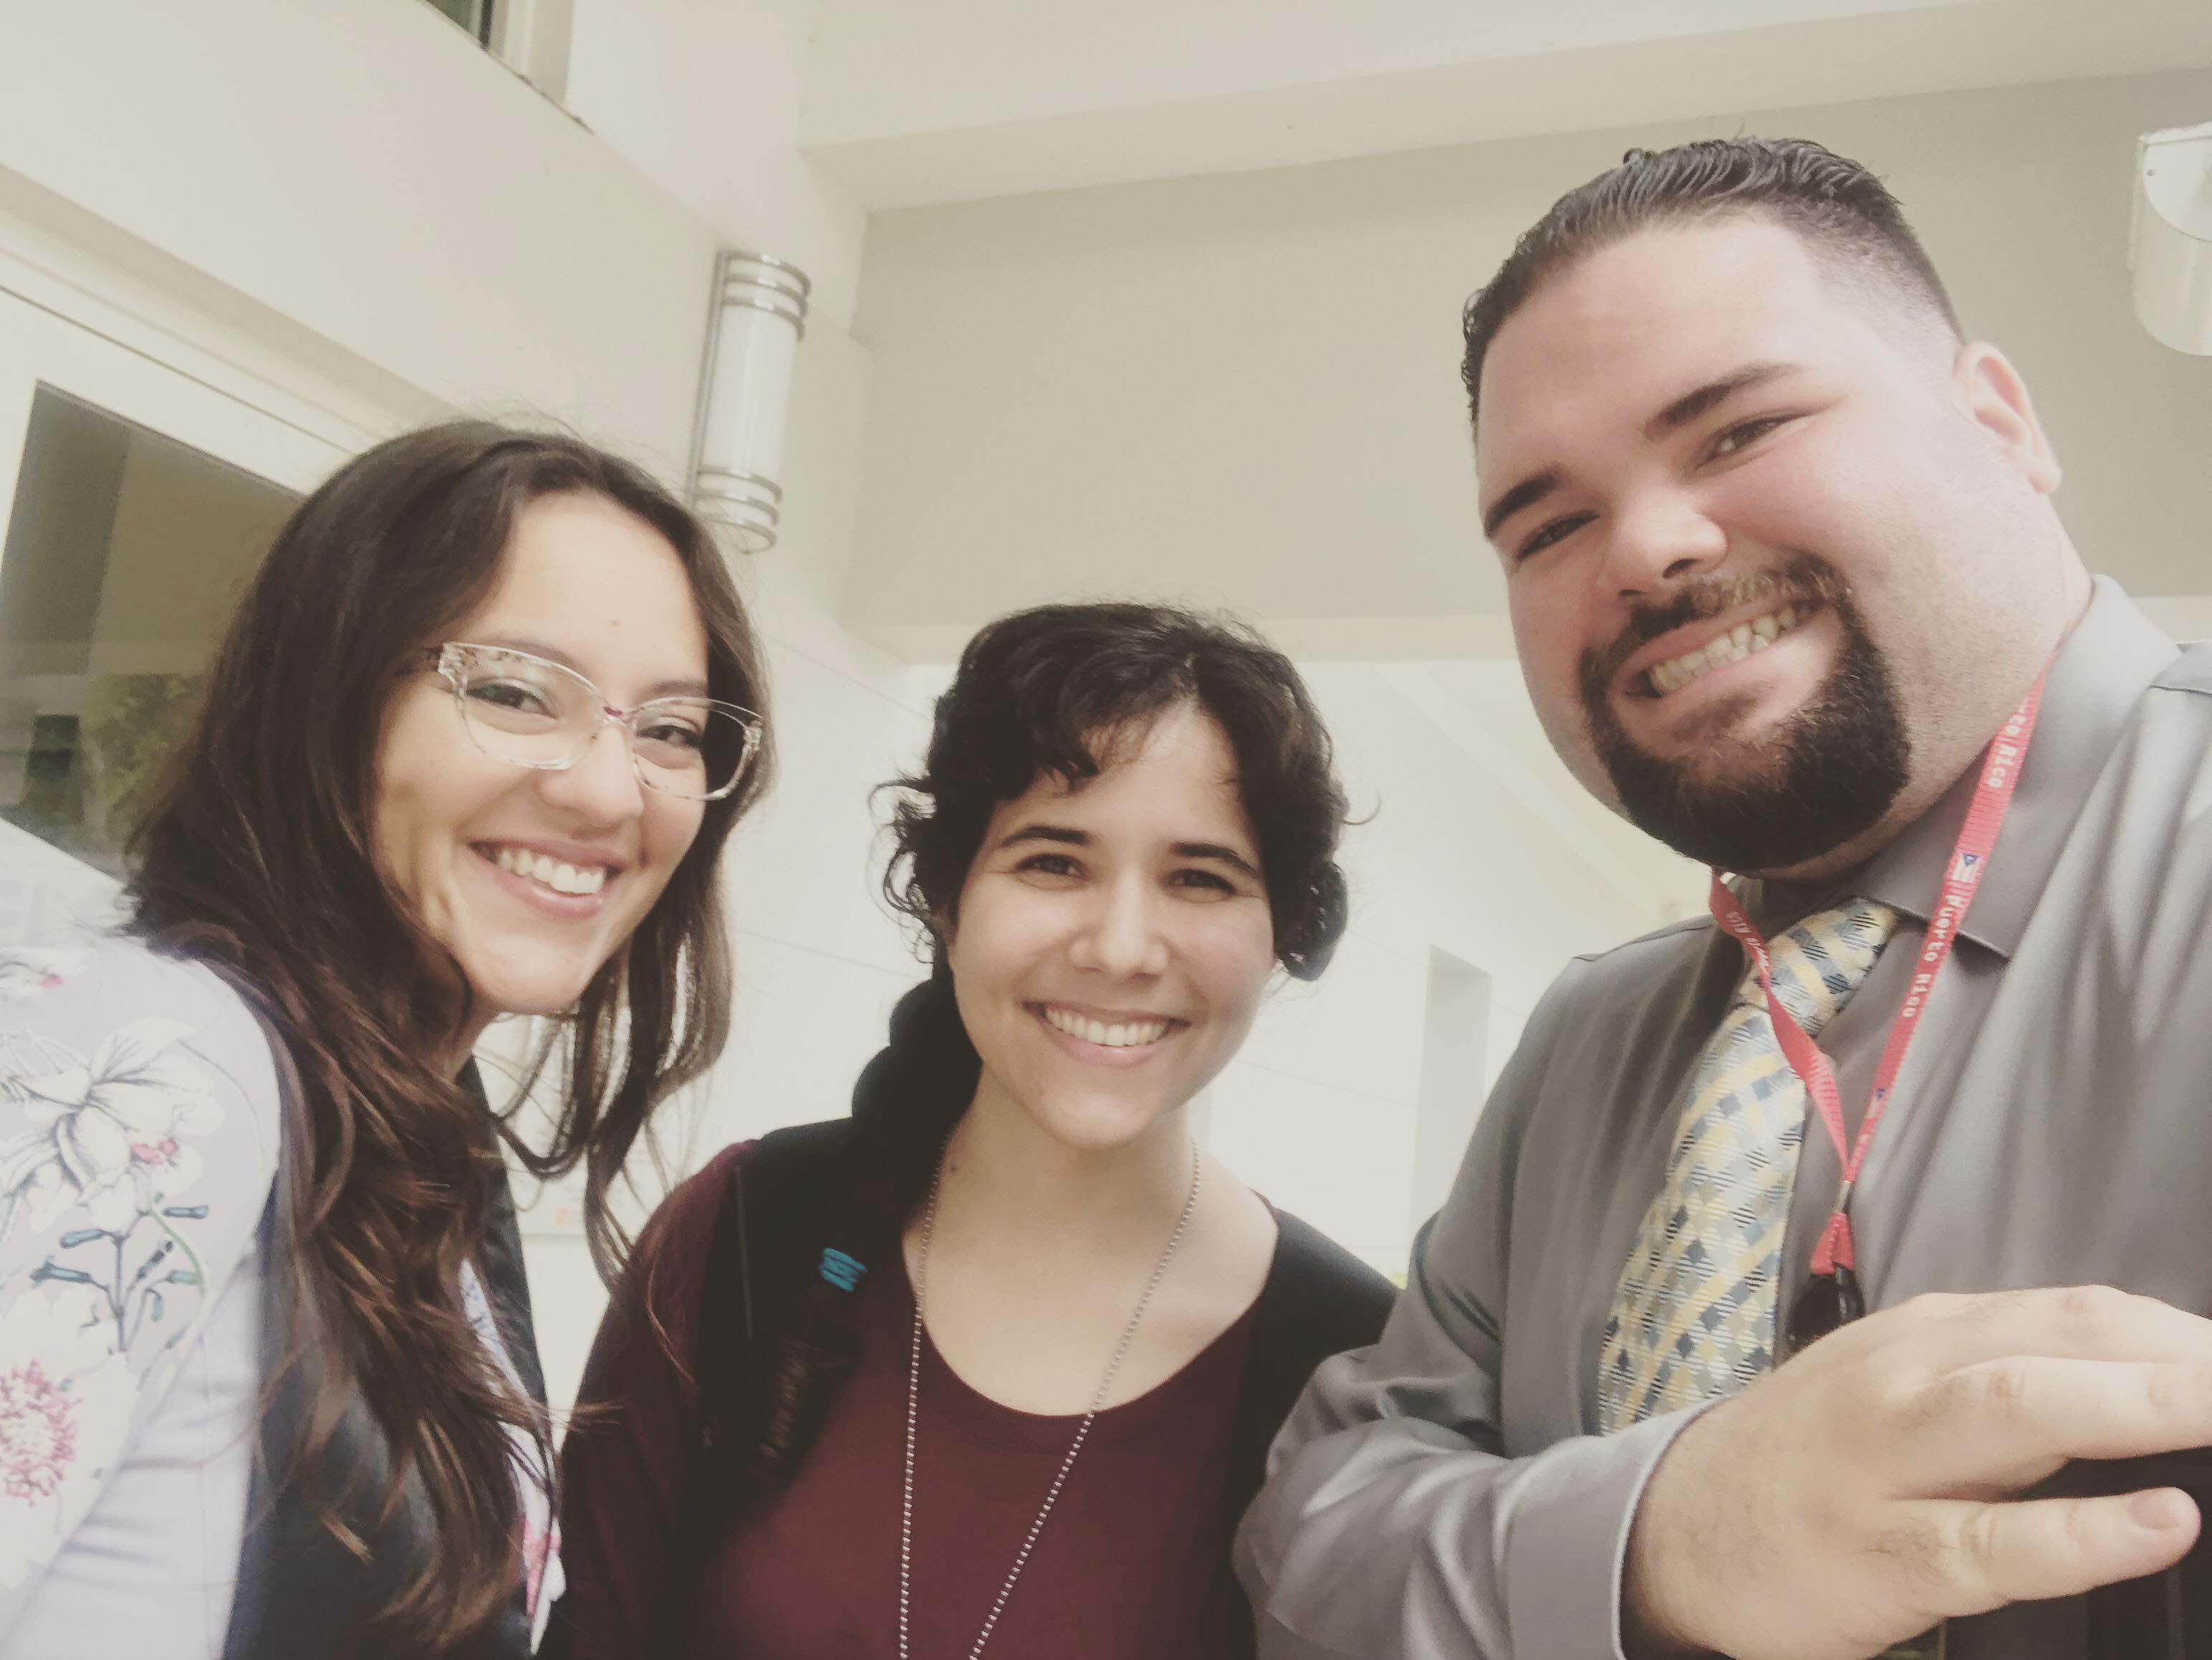 This image is of three UPRM students at the PRTESOL 2018 Convention